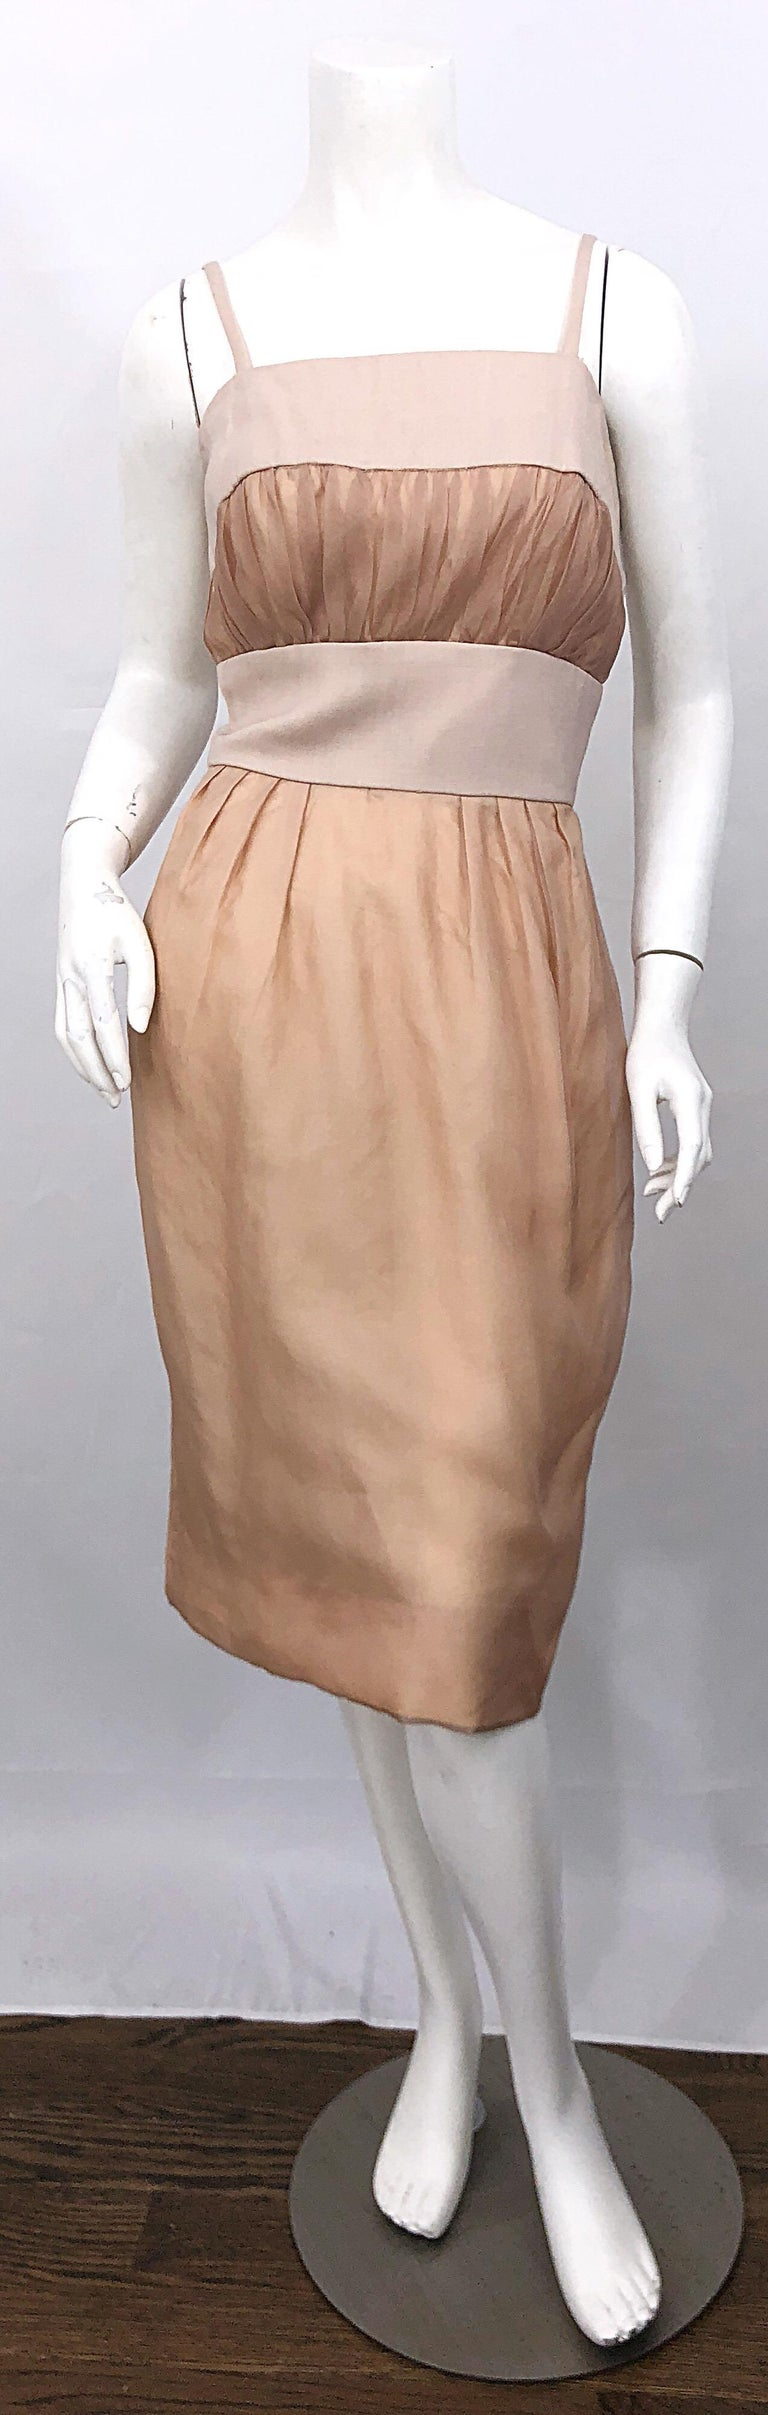 Beautiful 1950s ANITA MODES demi couture nude blush silk bombshell dress! Features a nude silk base with sheer chiffon overlay. Linen waistband, each shoulder strap, and above the bodice. Puckered chiffon at bust is so intricate, and very